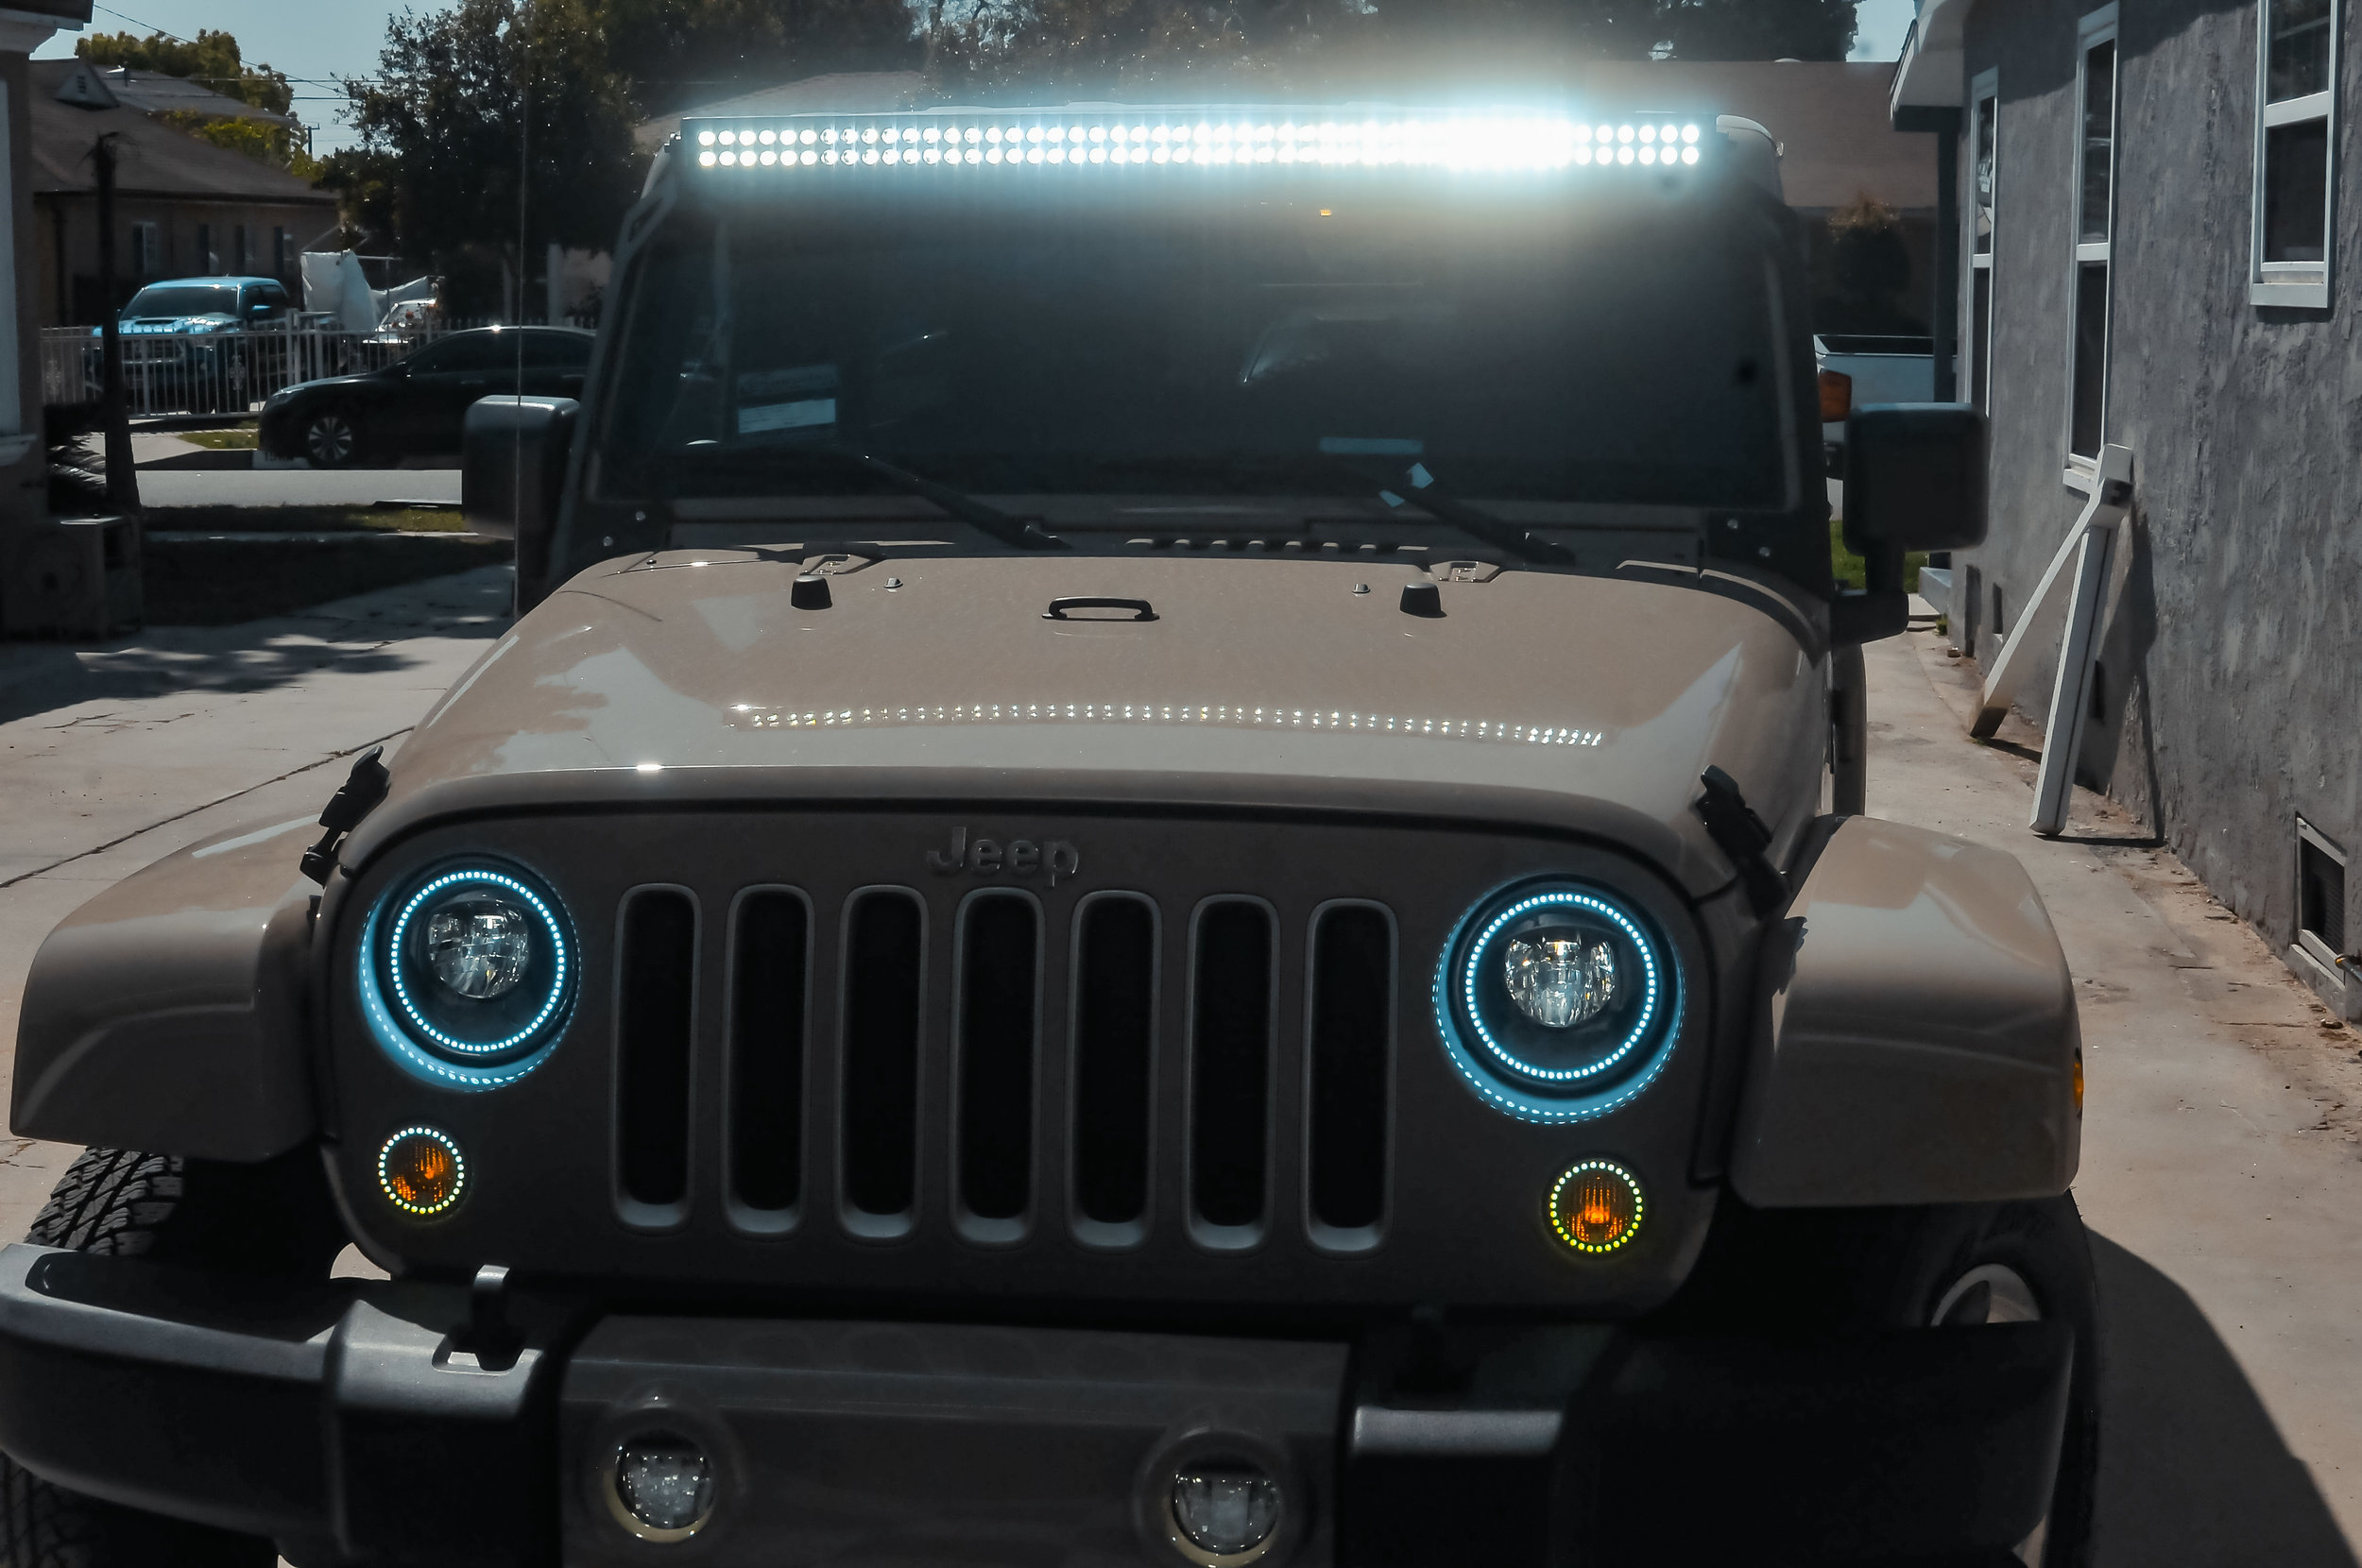 LED Light Bar Installs - The light bar trend is hot. And for a good reason! Most trucks looks hot with light bars and there's a major benefit to using them when going Off-Roading.